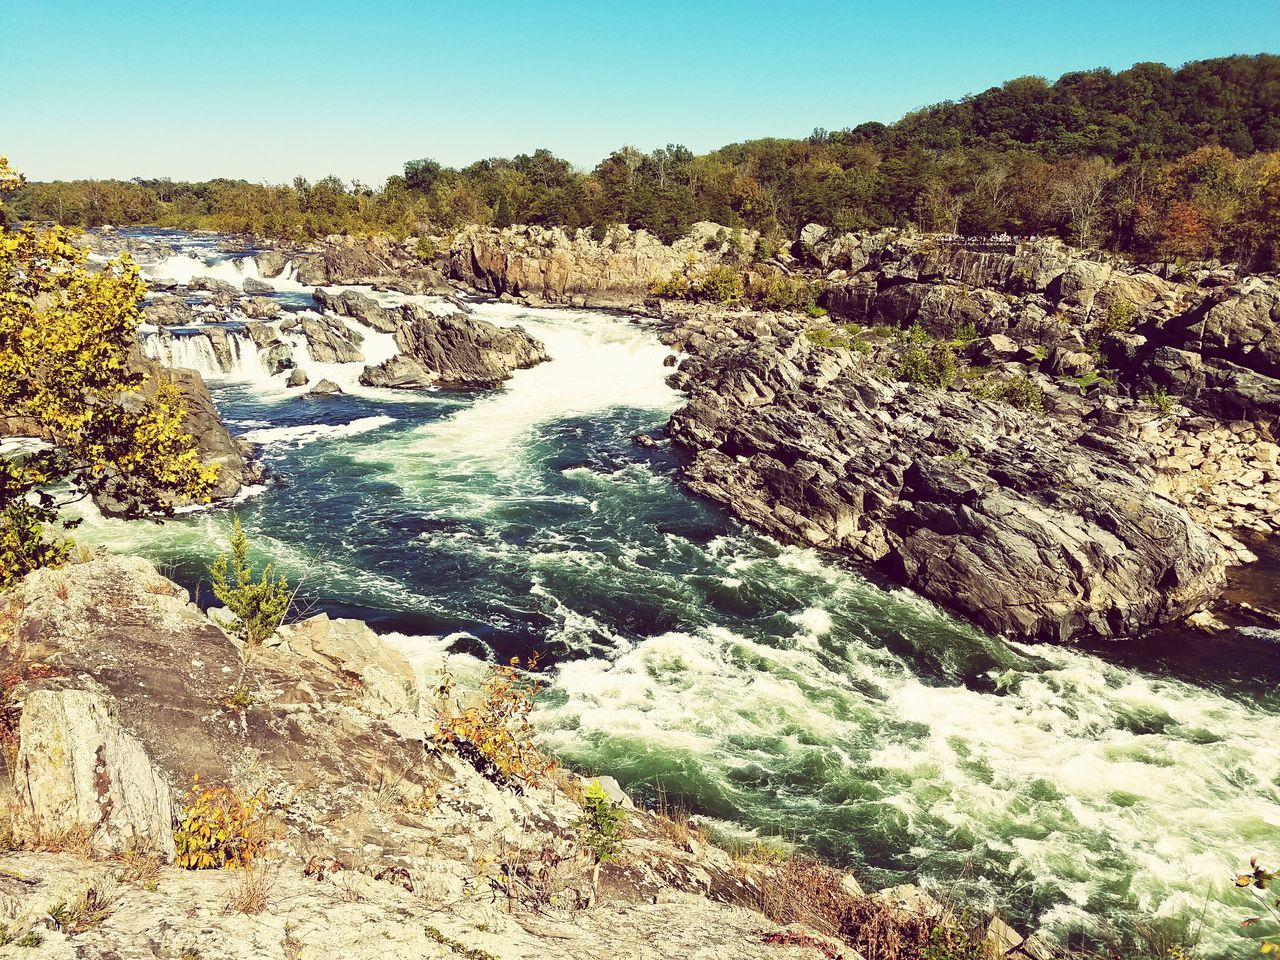 Great Falls Waterfall Beauty In Nature Water Water Motion Scenics Beauty In Nature Clear Sky Flowing Water Flowing Waterfall Tranquil Scene Nature Rock - Object River Non-urban Scene Travel Travel Destinations Tourism Idyllic Rock Formation Day Environment First Eyeem Photo